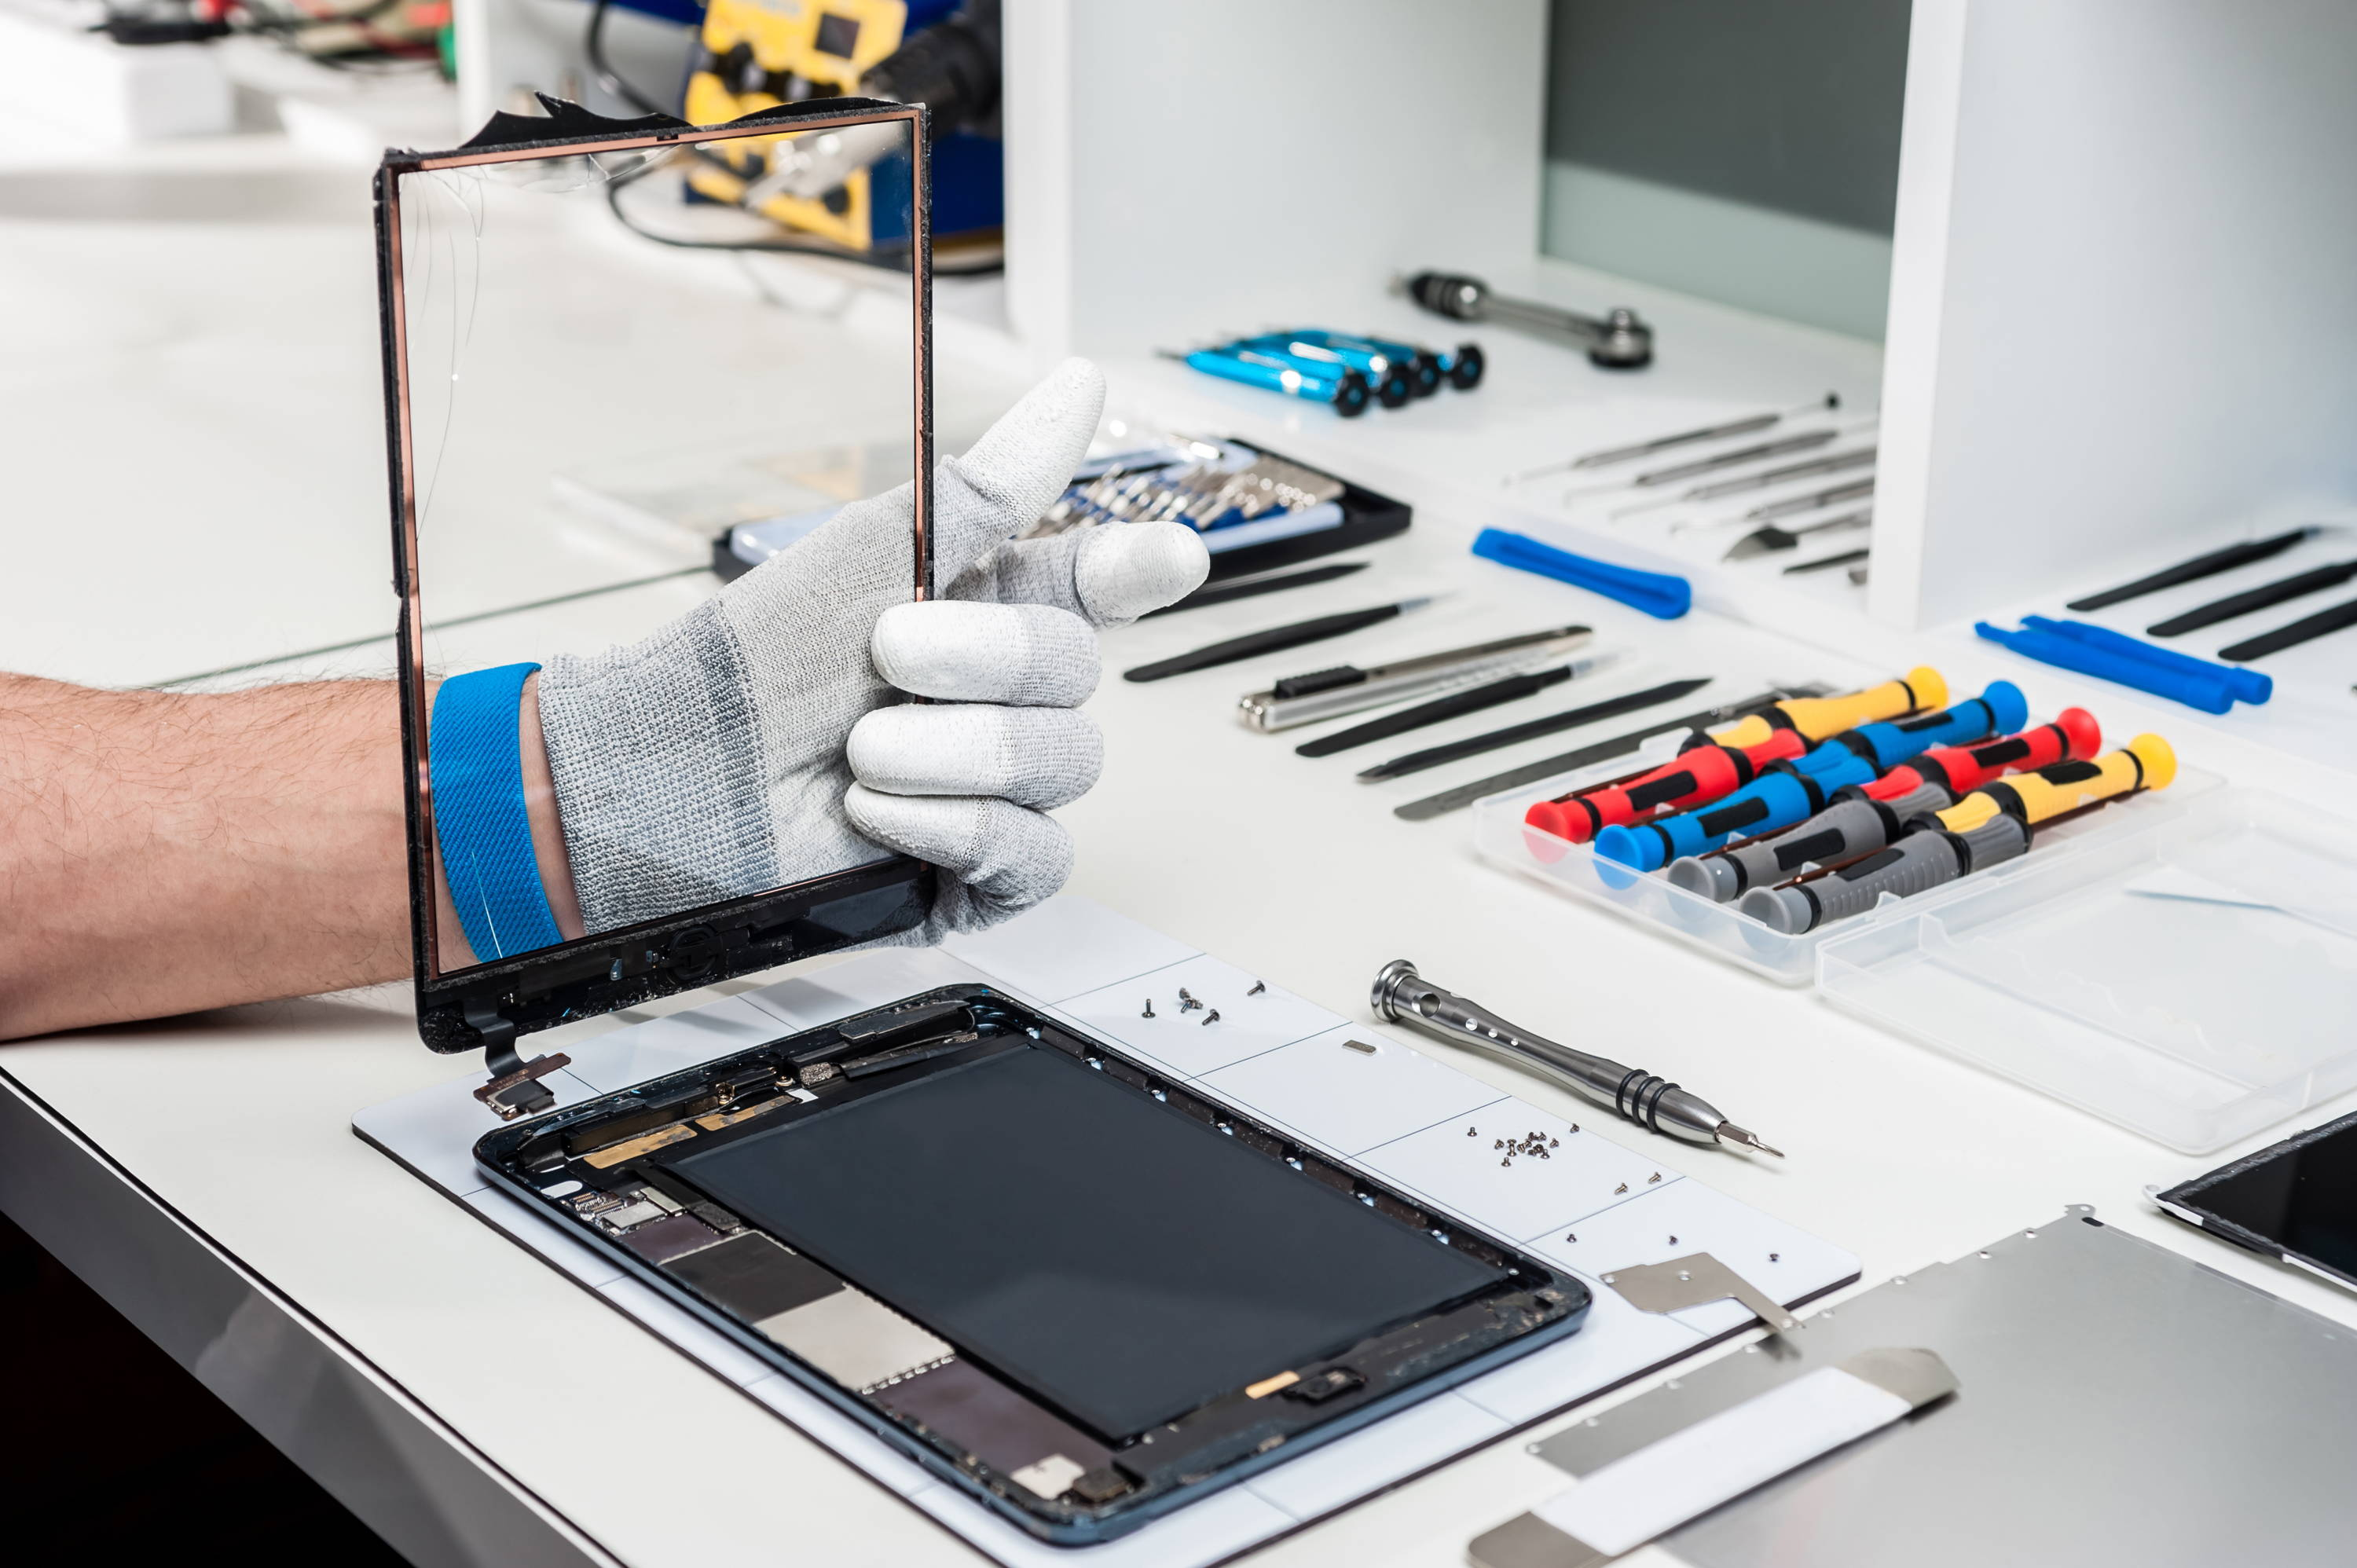 Broken Ipad Screen? Don't worry! Get it fixed while you wait. Paddington, experts in iPhone, iPad, Samsung Tab screen Repair